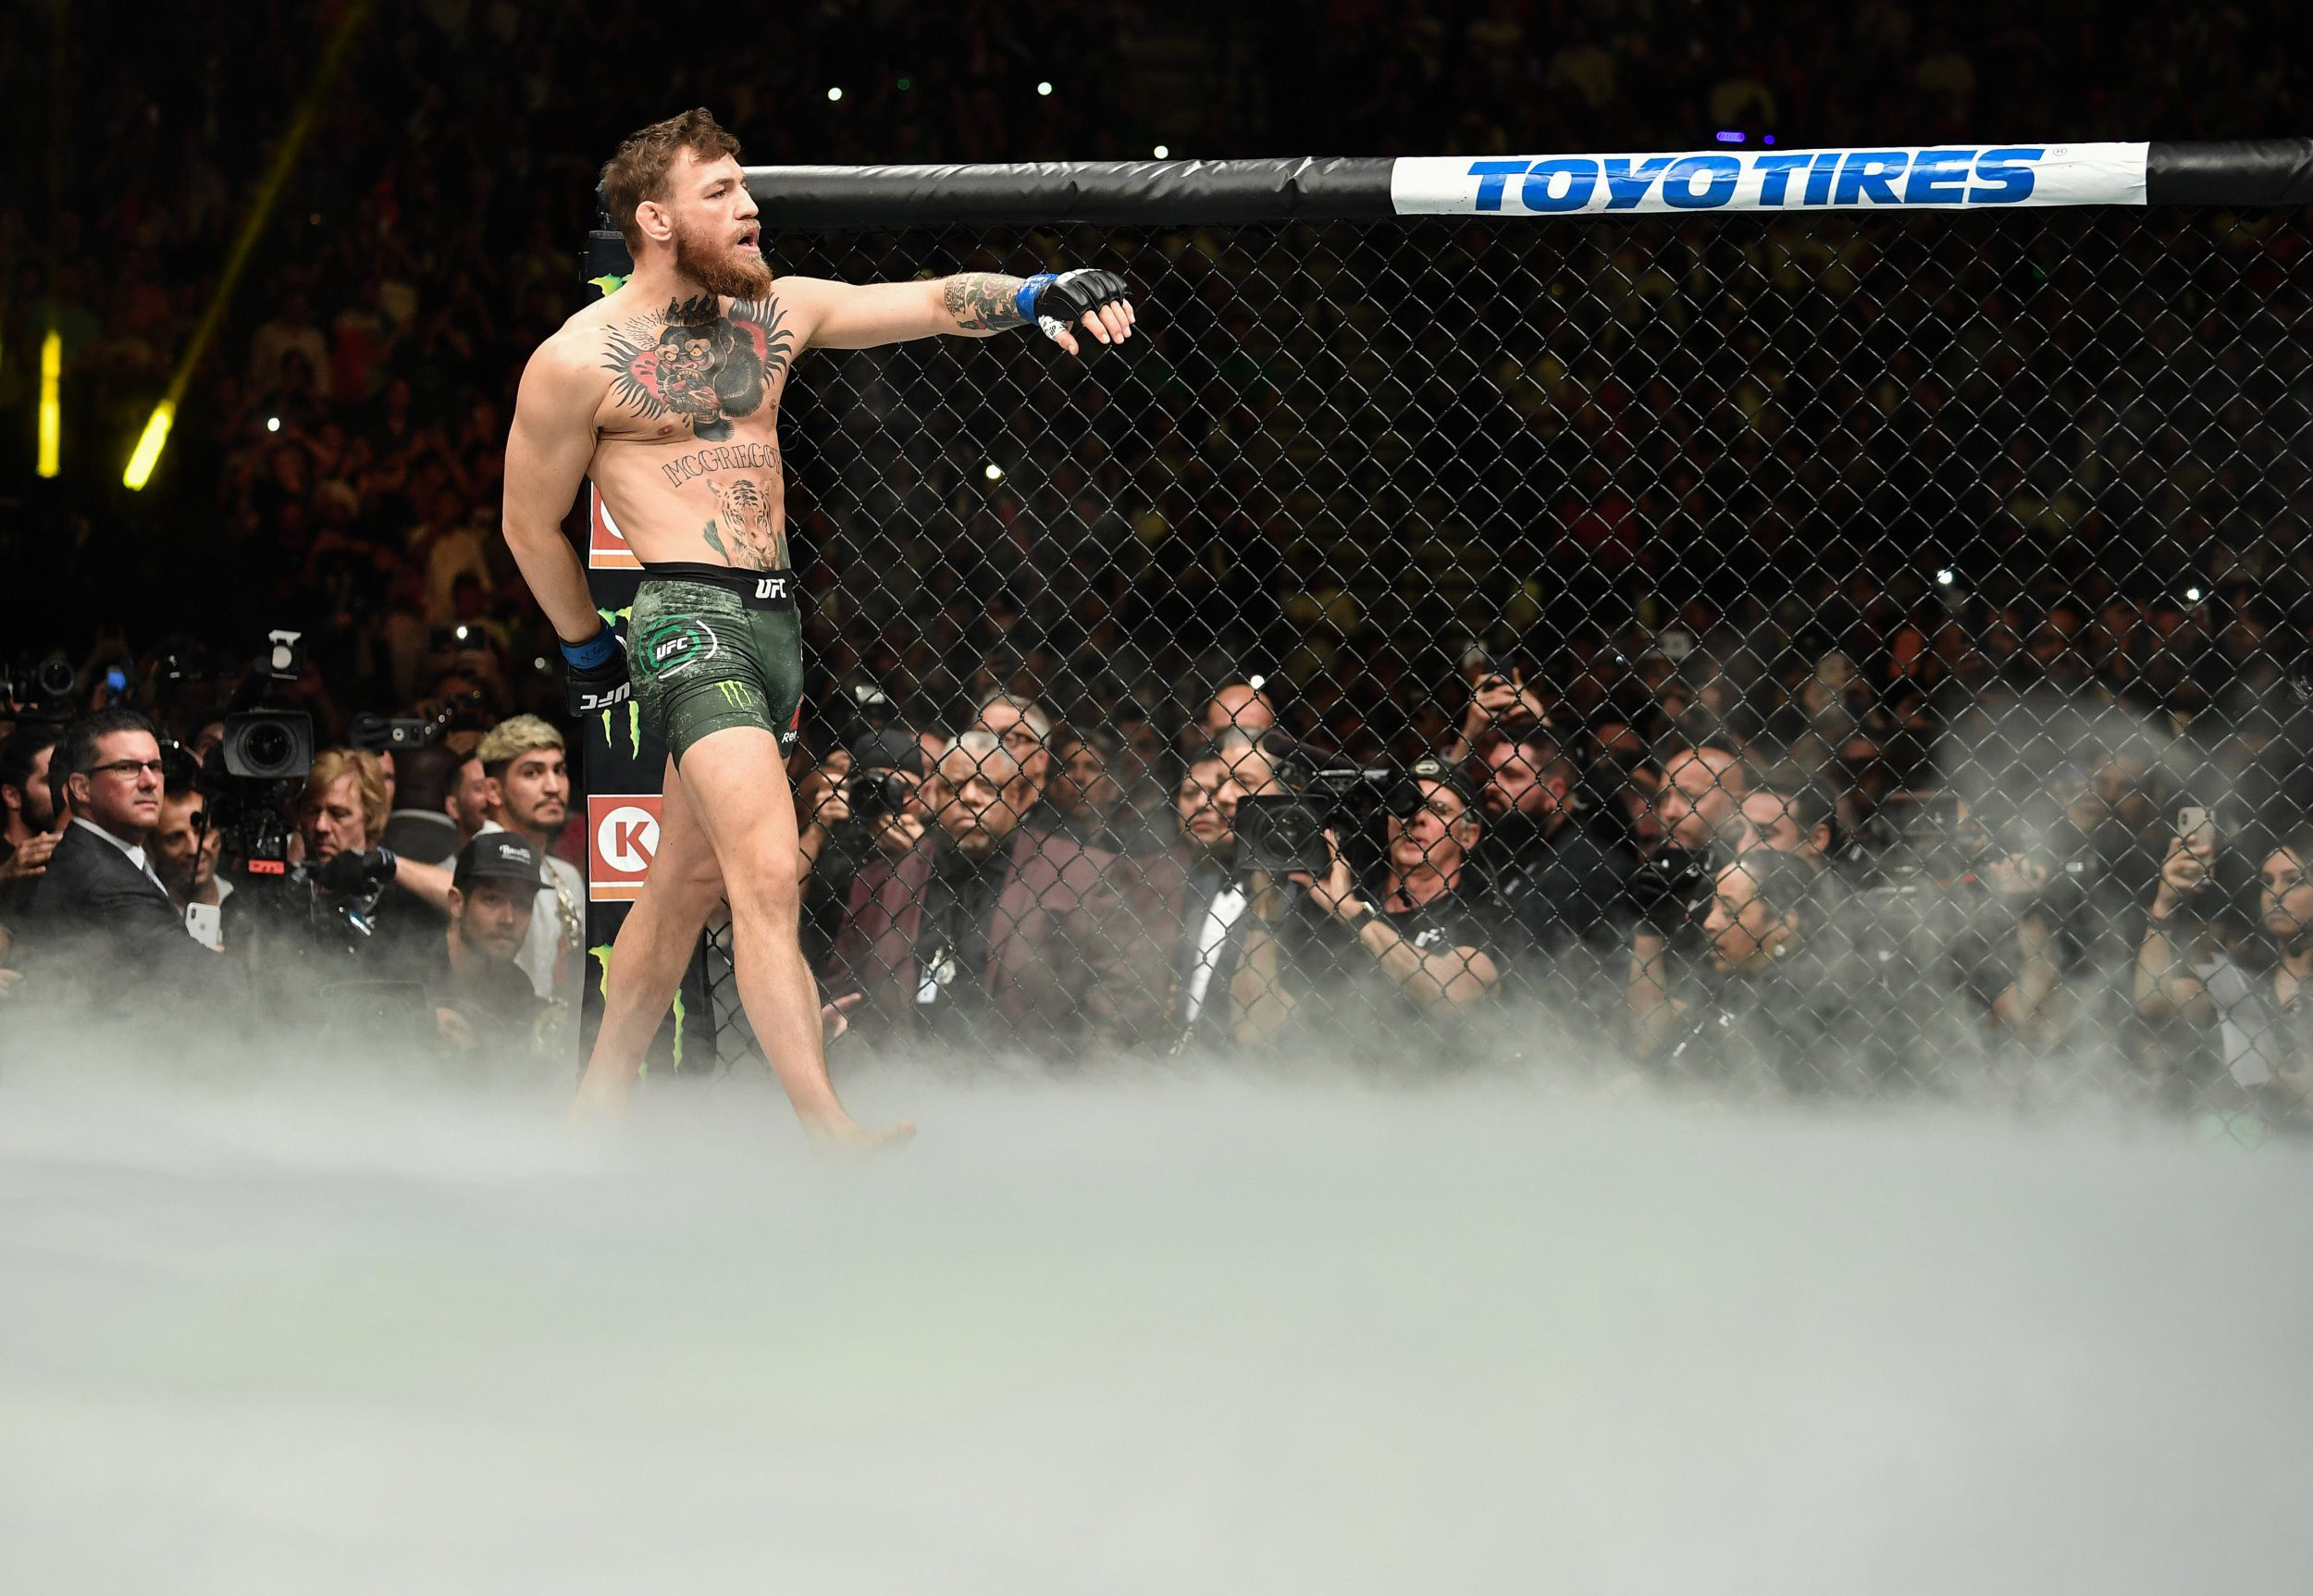 LAS VEGAS, NV - OCTOBER 06: Conor McGregor of Ireland enters the Octagon before facing Khabib Nurmagomedov of Russia in their UFC lightweight championship bout during the UFC 229 event inside T-Mobile Arena on October 6, 2018 in Las Vegas, Nevada. (Photo by Brandon Magnus/Zuffa LLC/Zuffa LLC via Getty Images)